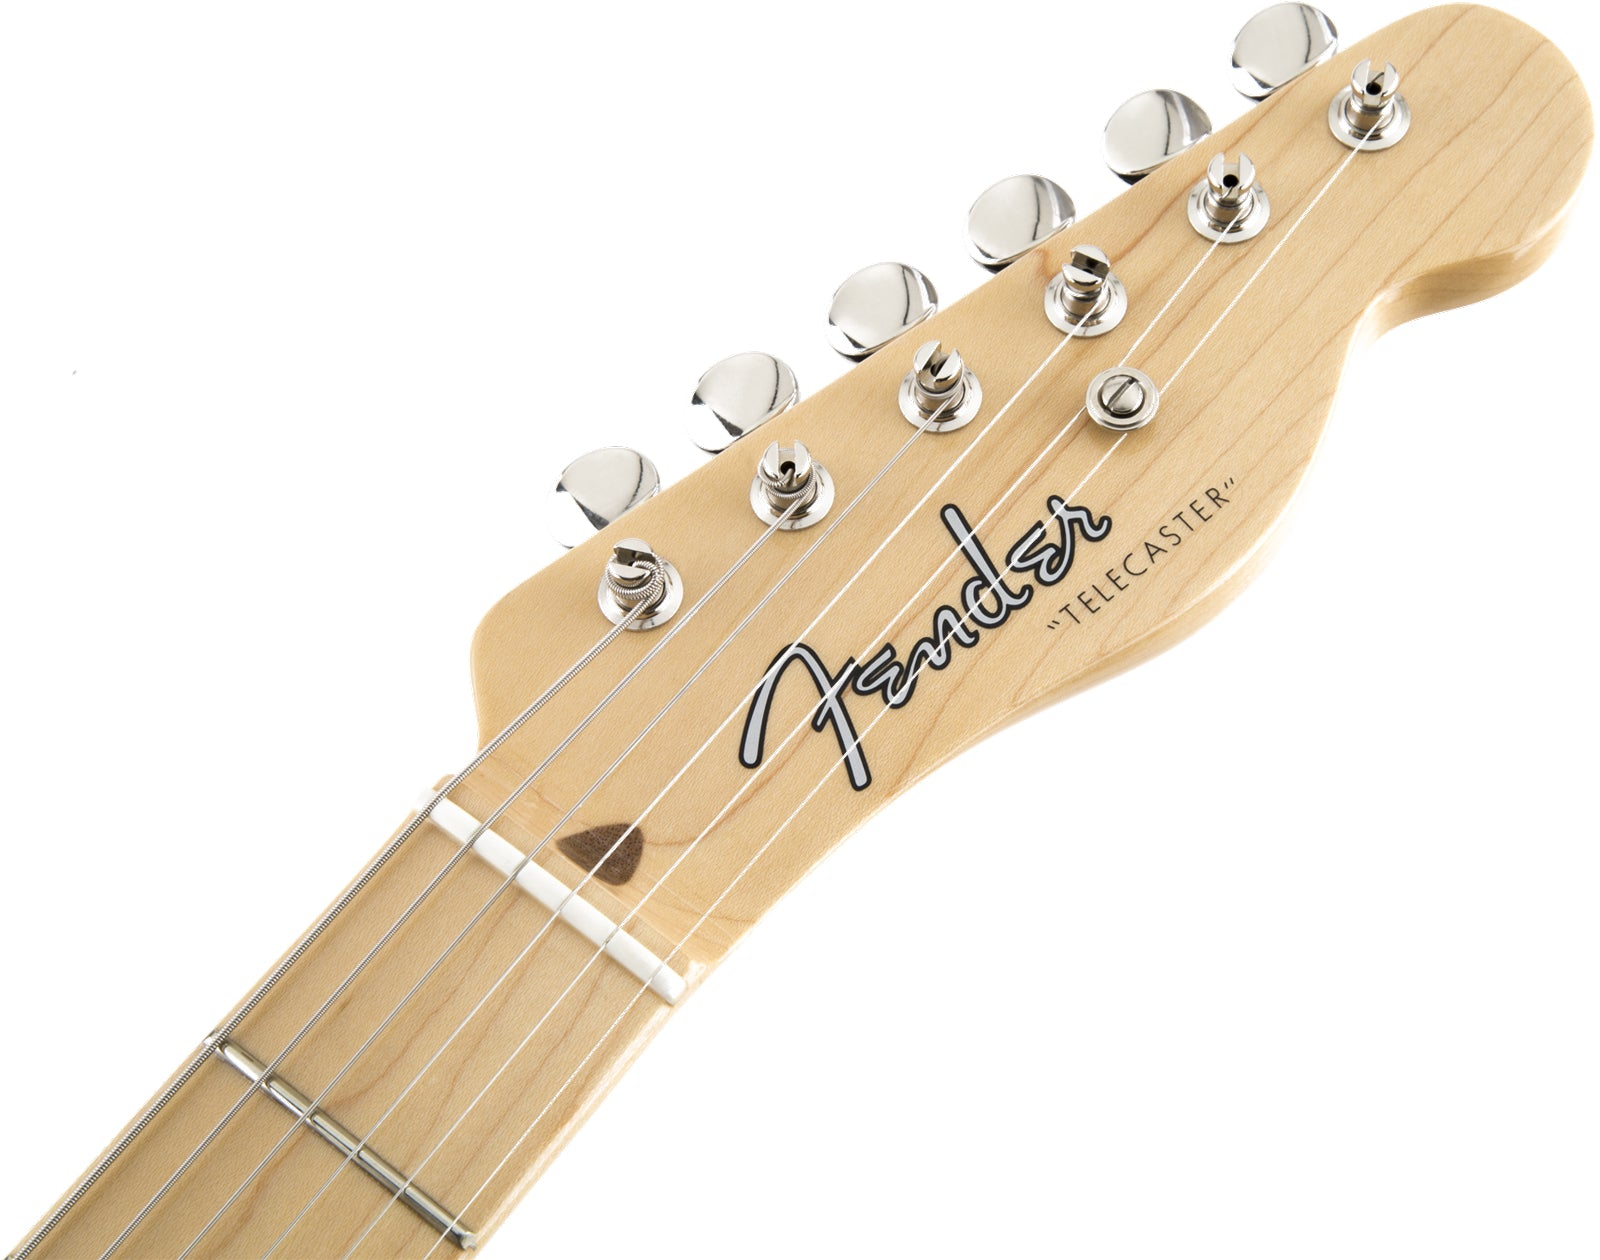 Fender Limited Edition American Vintage 52 Telecaster Korina Maple Style Wiring Solution For A 2 Humbucker Tele Blackguard Blonde Fingerboard